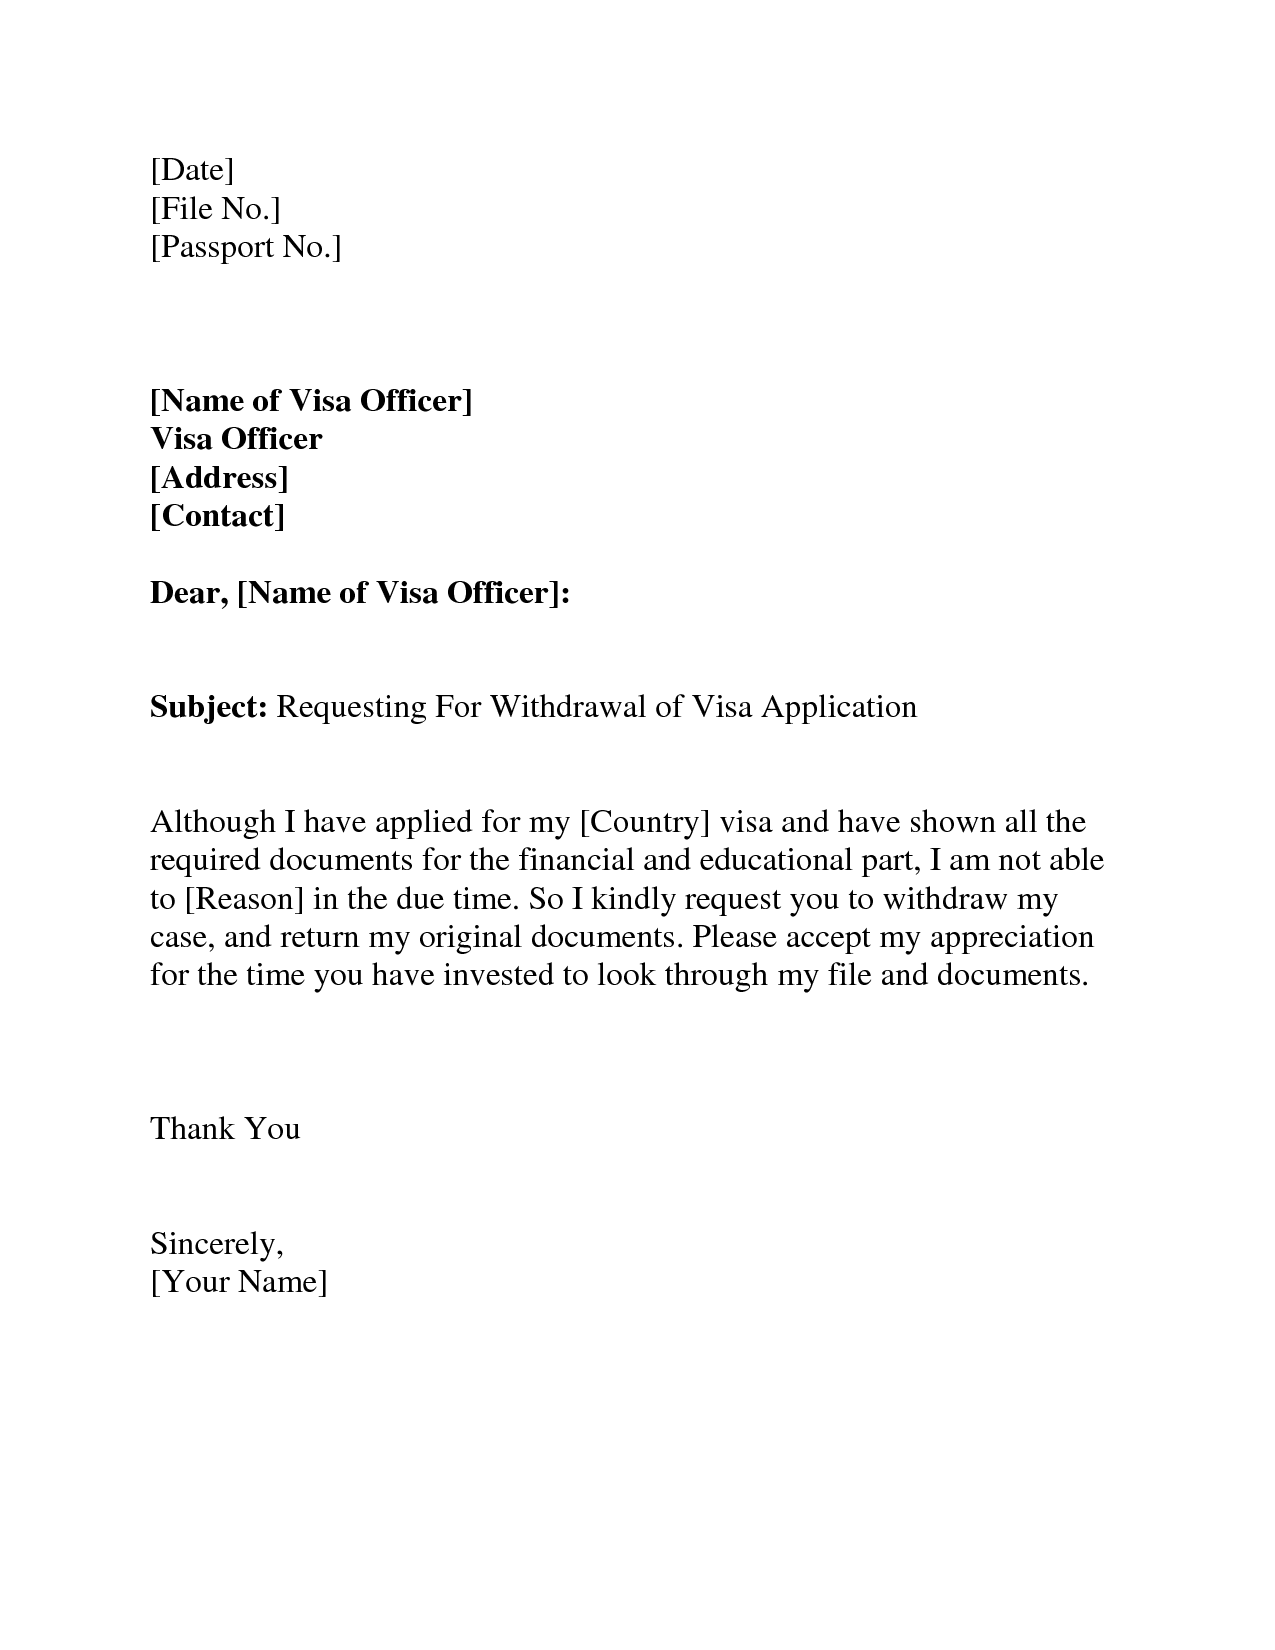 Visa withdrawal letter request letter format letter and emailvisa visa withdrawal letter request letter format letter and emailvisa invitation letter to a friend example application letter sample altavistaventures Image collections